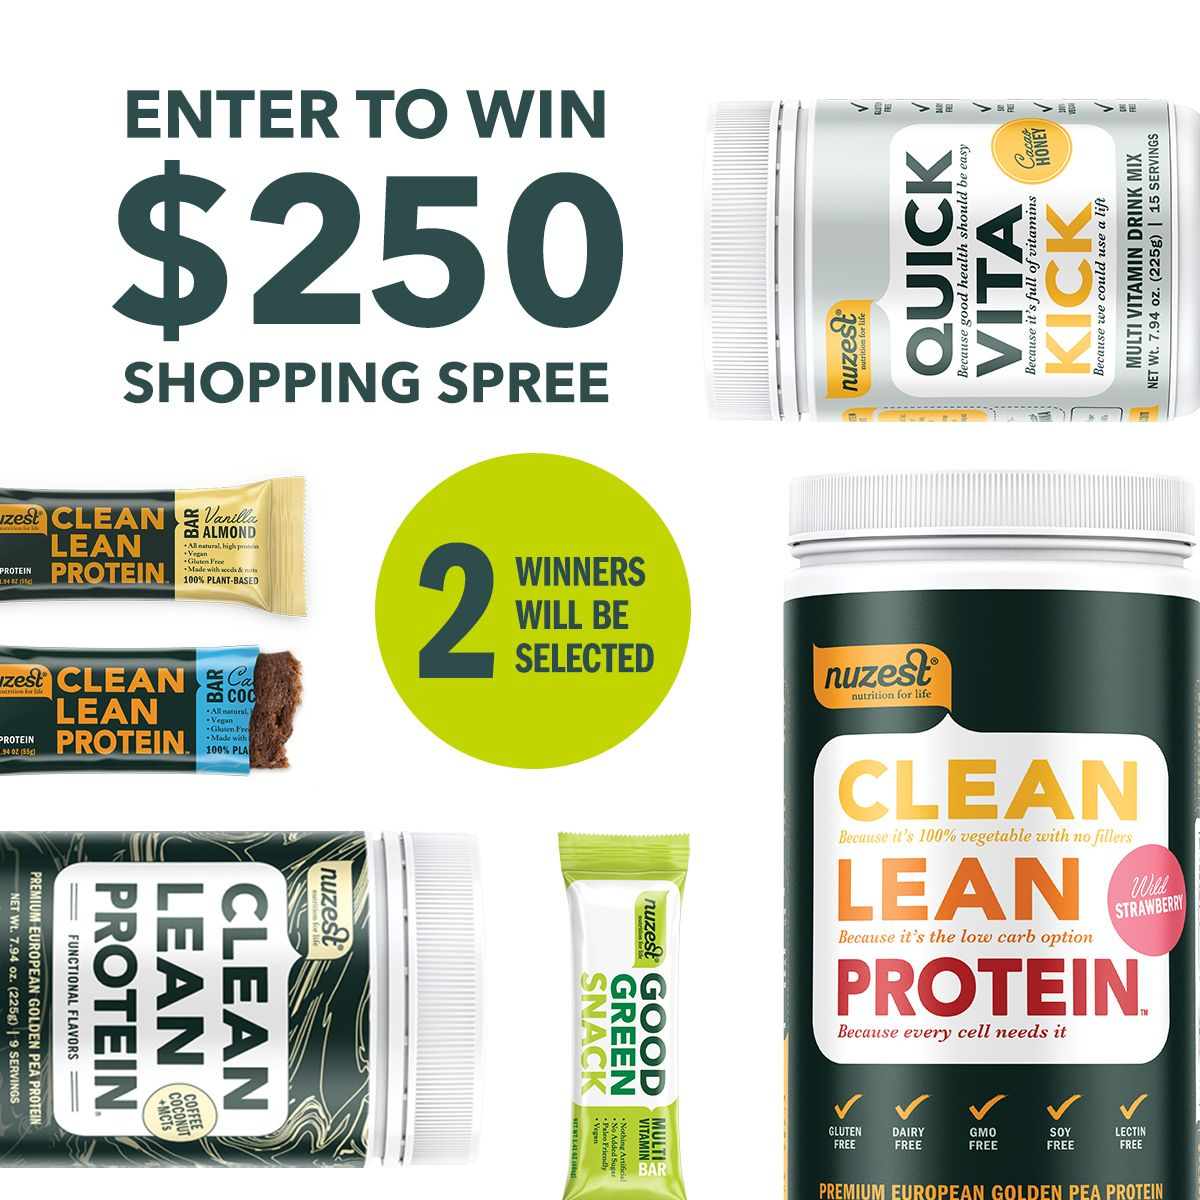 Enter to win this super proteinpackage prize from nuzest